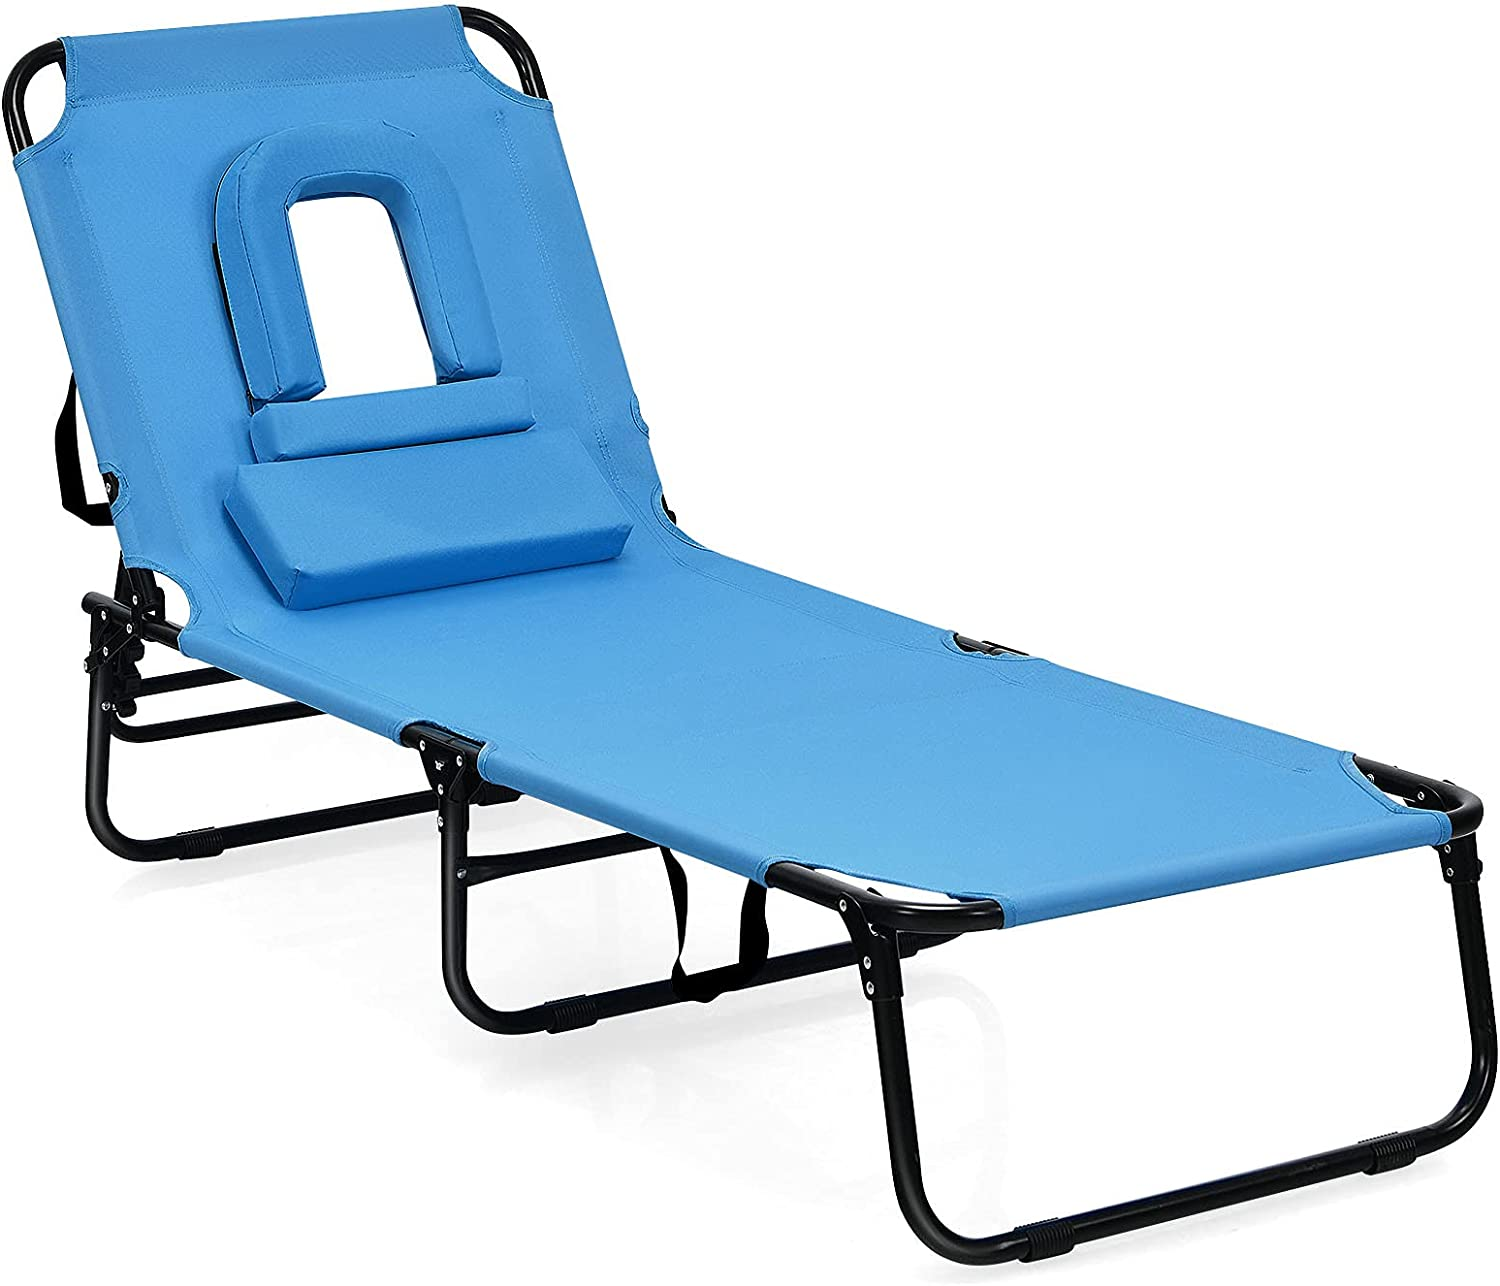 Goplus Folding Lounge Chair for Patio Poolside Beach Balcony Po Limited time sale New product!!